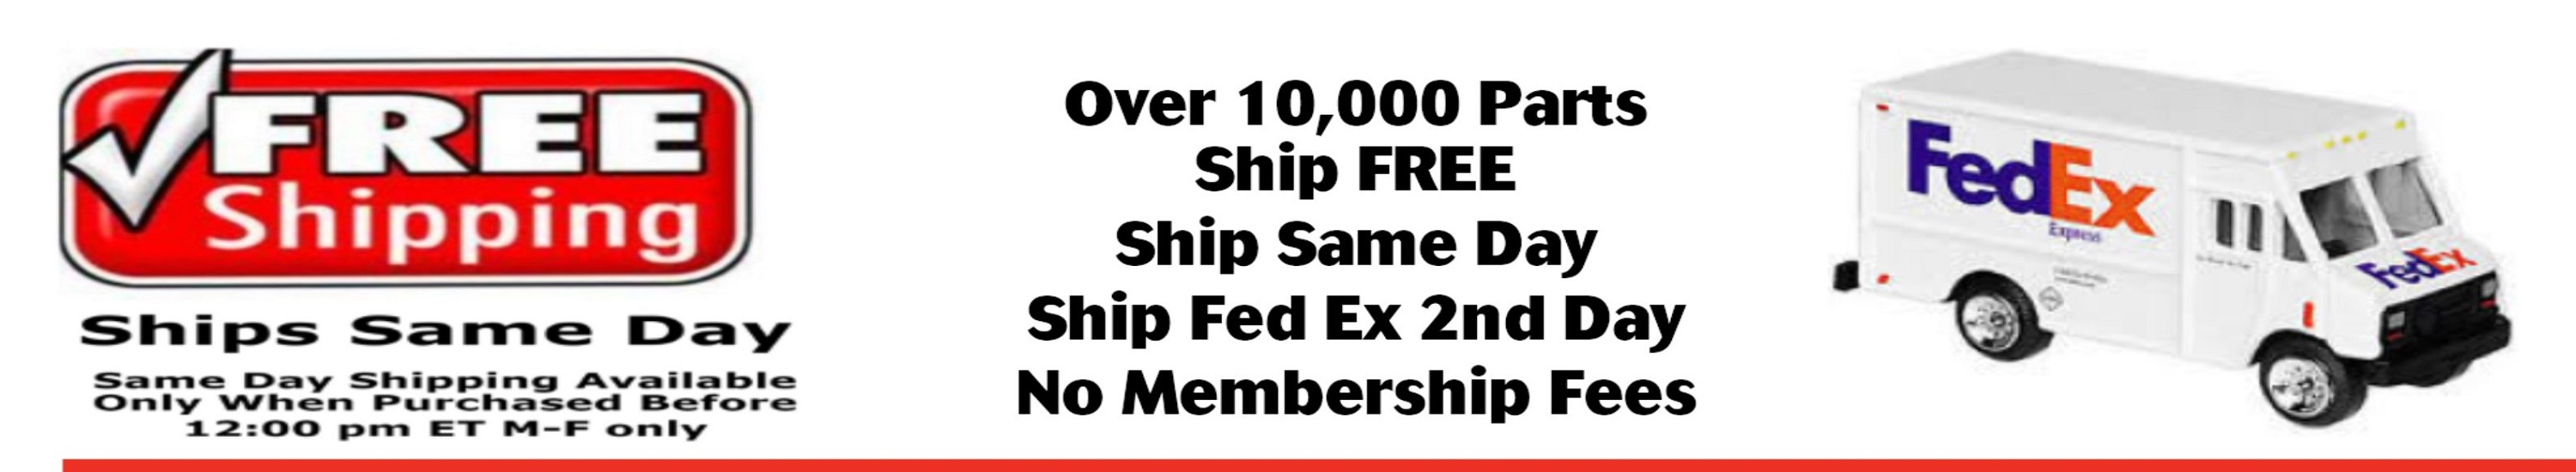 home-page-banner-fed-ex-2.jpg